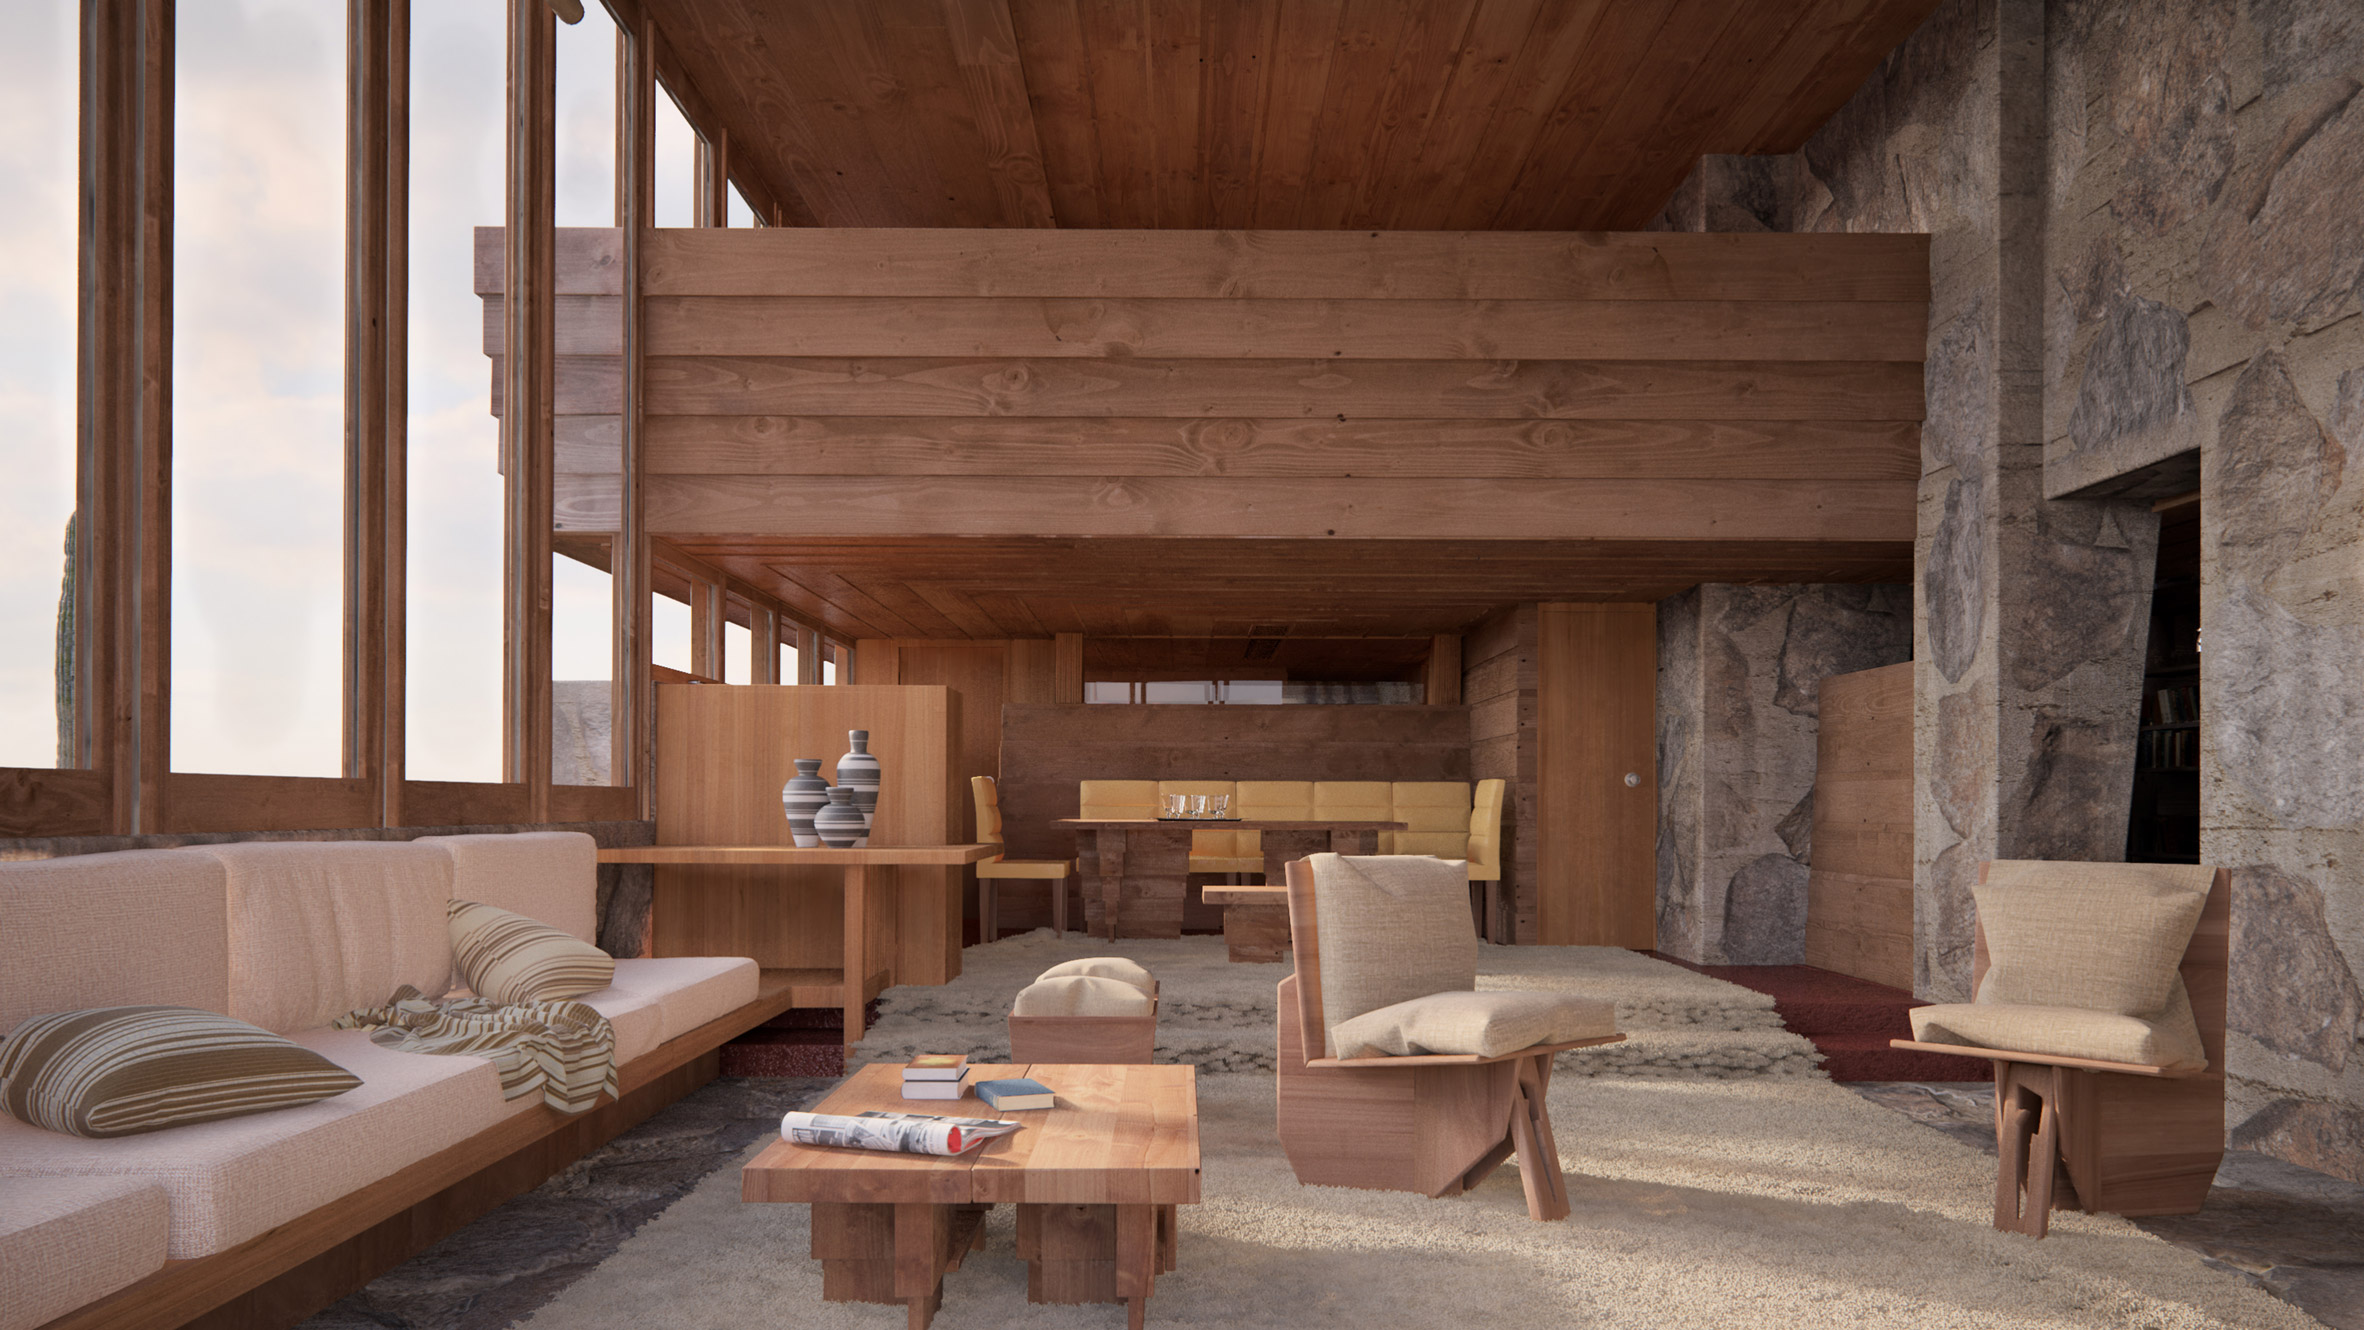 Colorful Past: Photorealistic Recreations Of Lost Frank Lloyd Wright  Buildings   99% Invisible